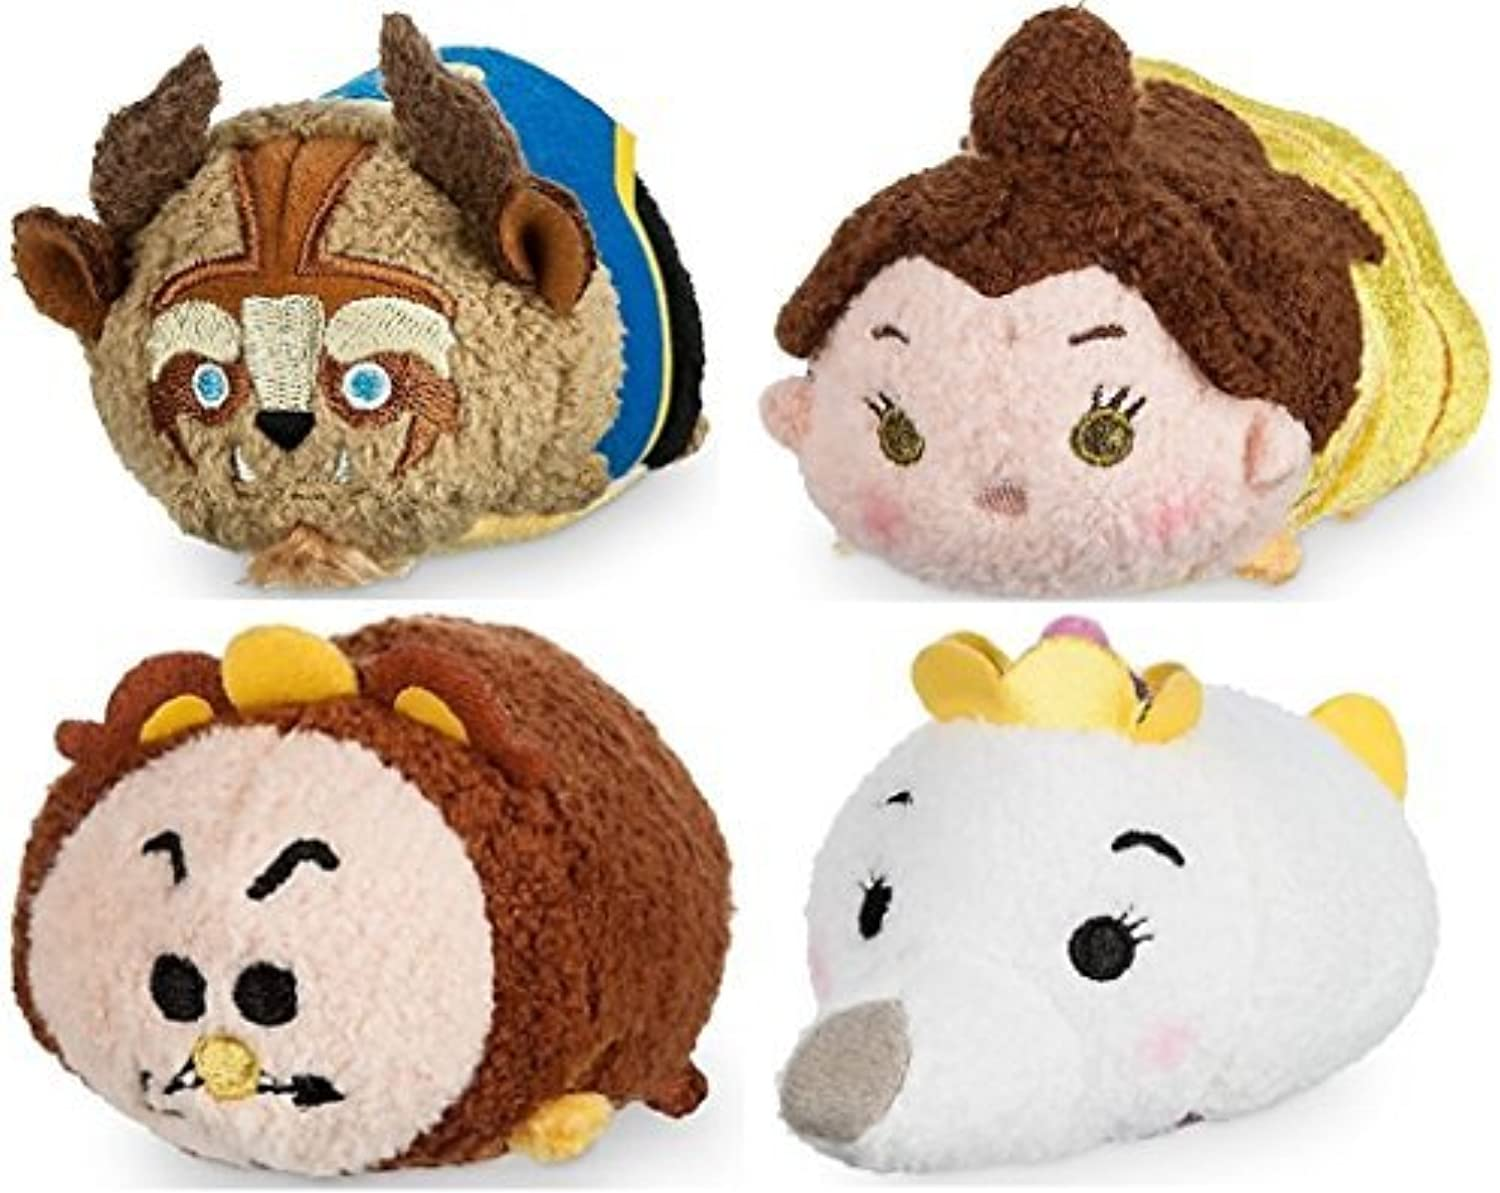 Disney Store Beauty & Beast Mini Tsum Tsum Set of 4 Cogwsorth Mrs Potts by Disney Interactive Studios